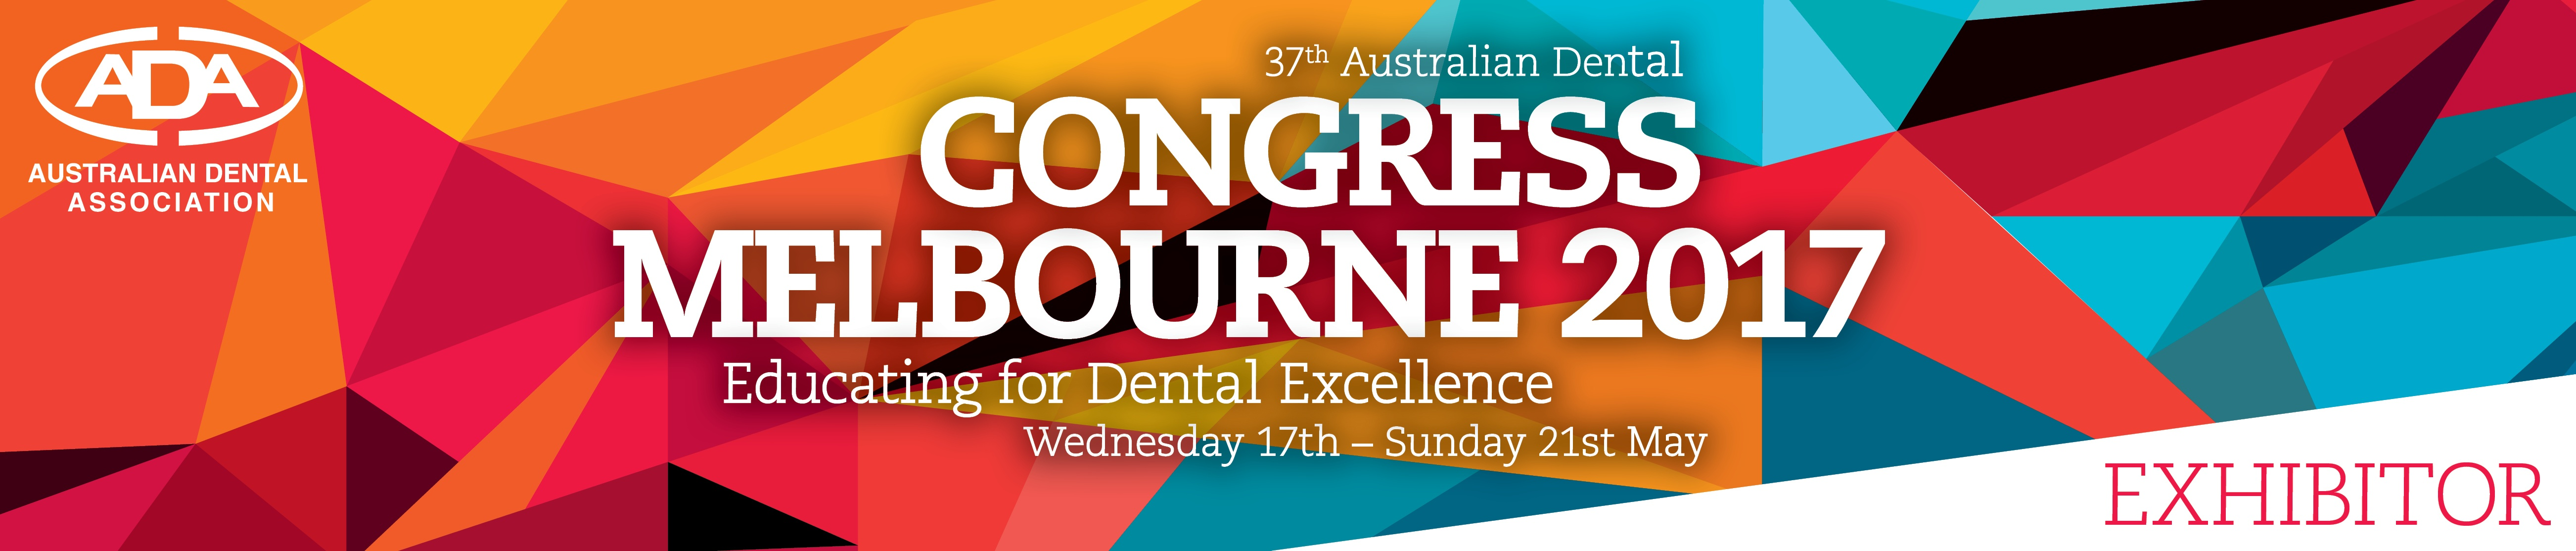 Australian Dental Congress Melbourne